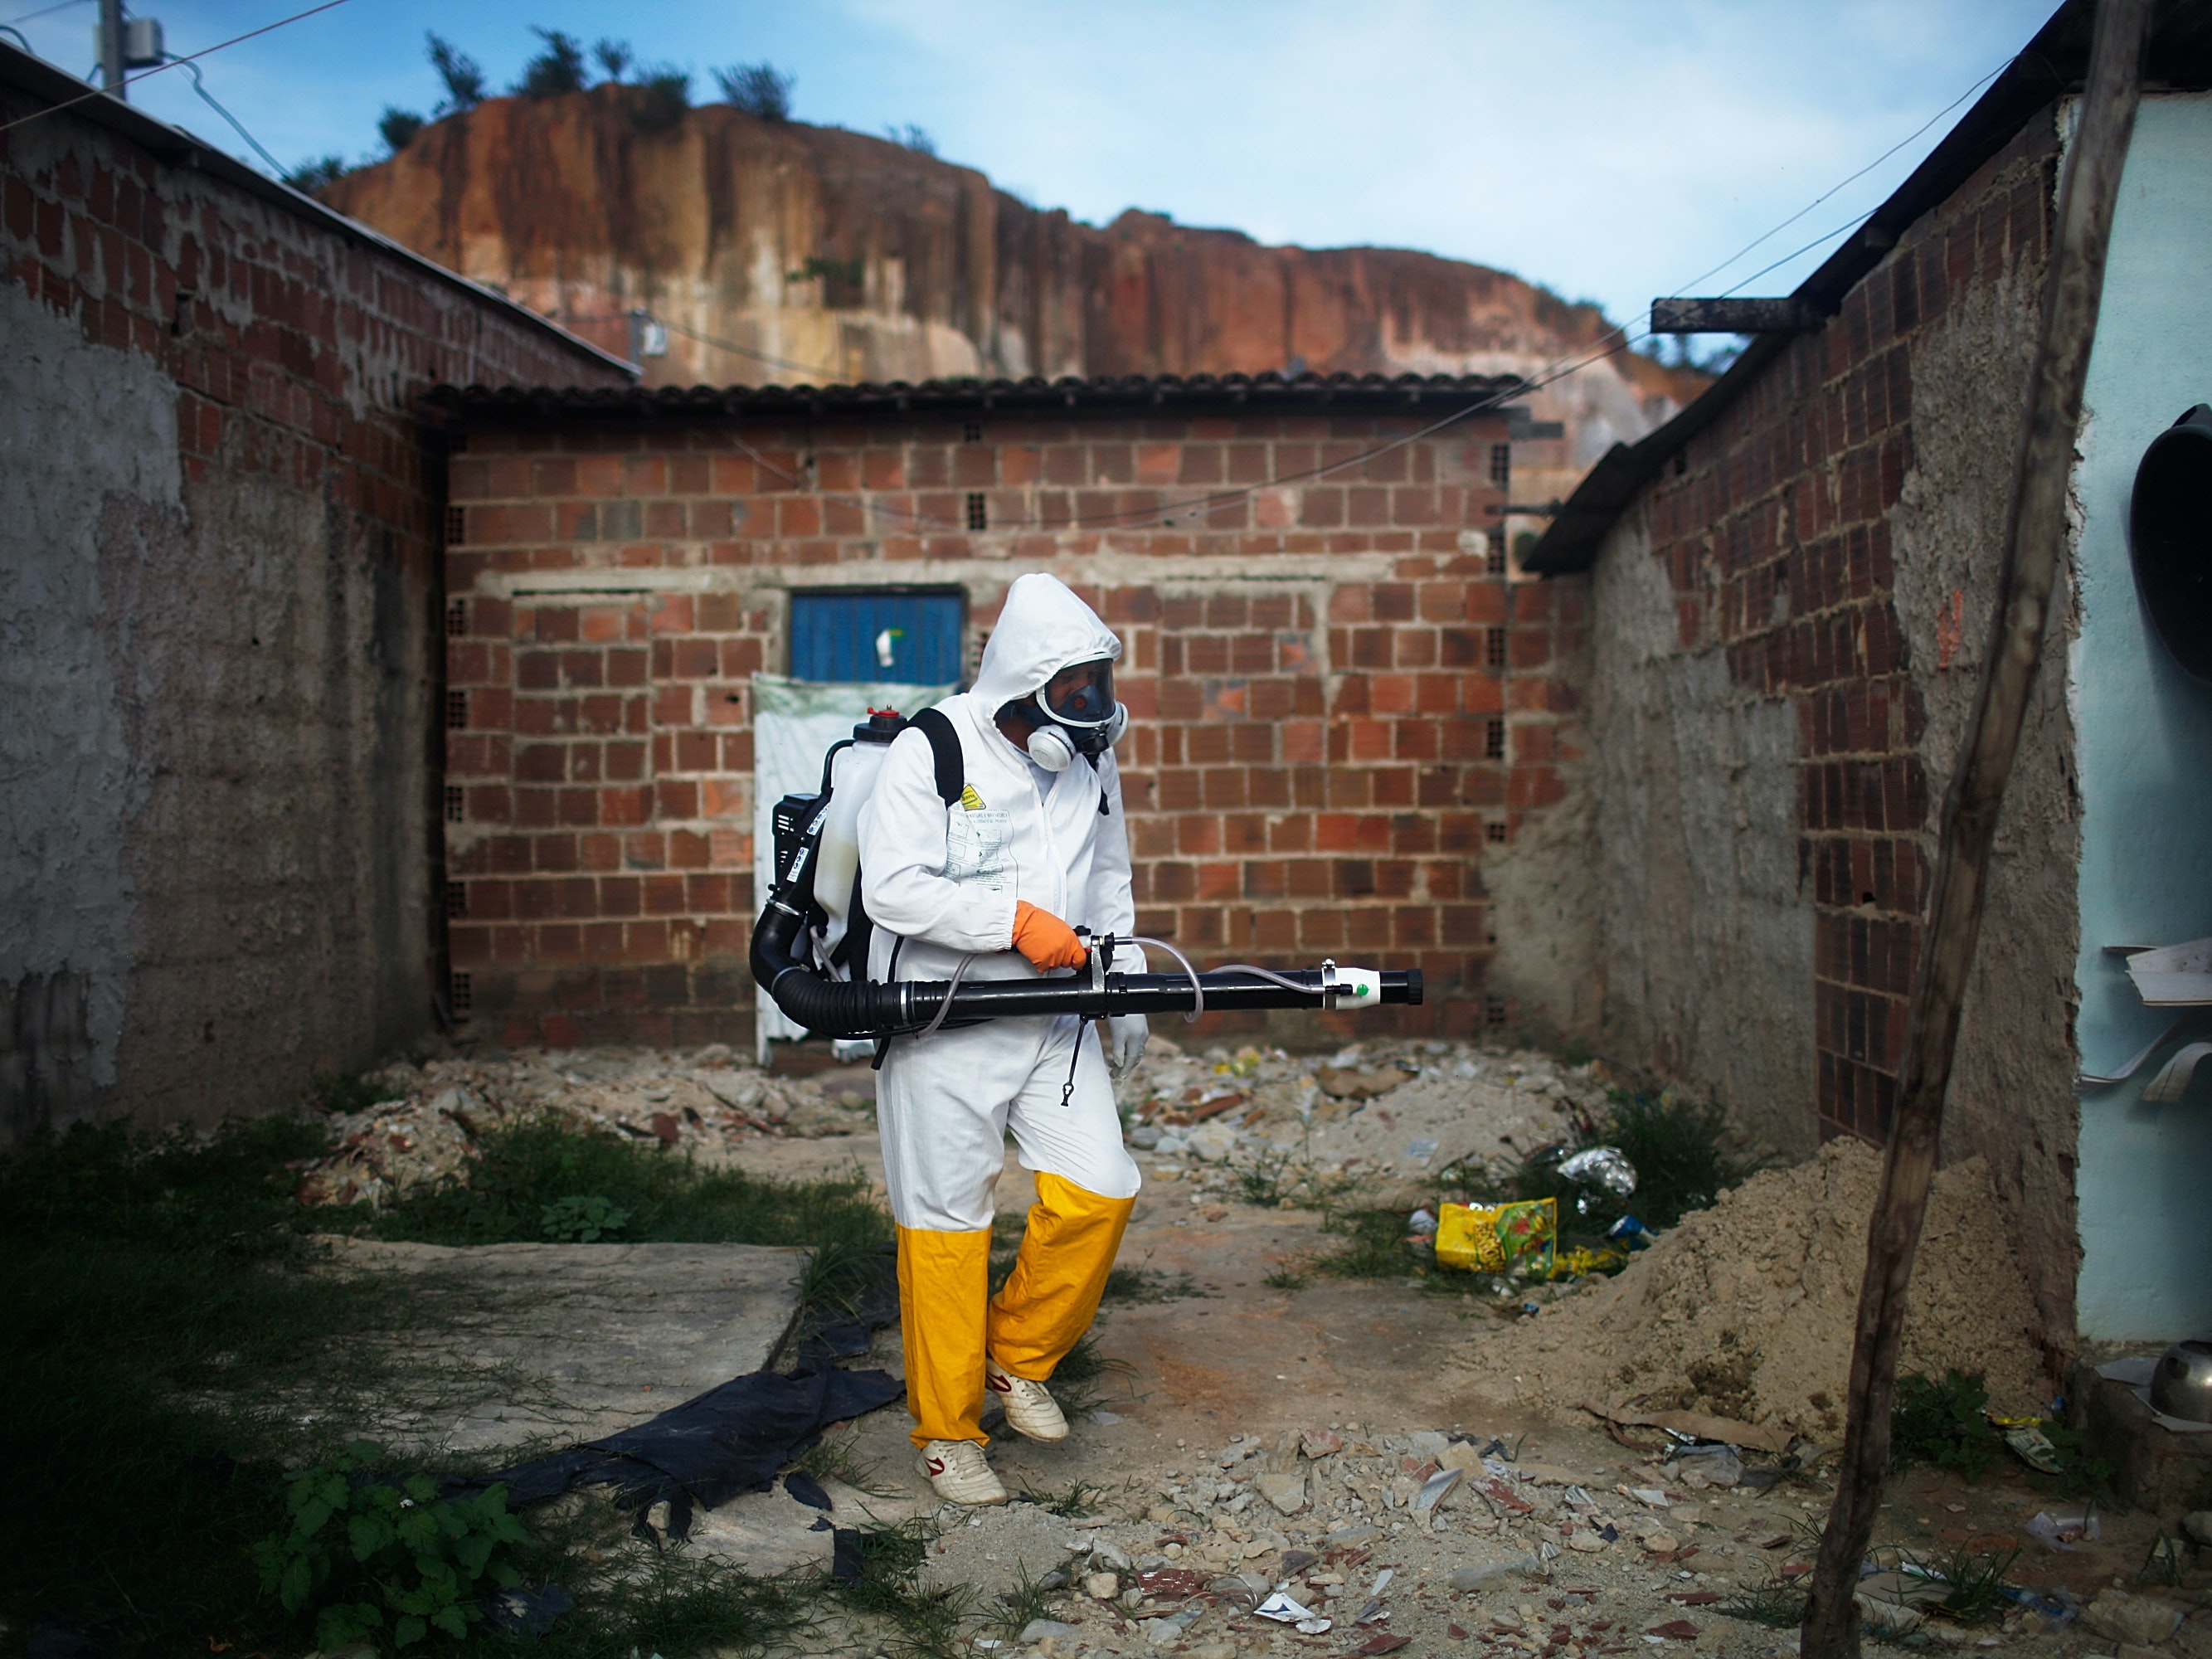 Here Are the 5 Craziest Zika Virus Conspiracy Theories